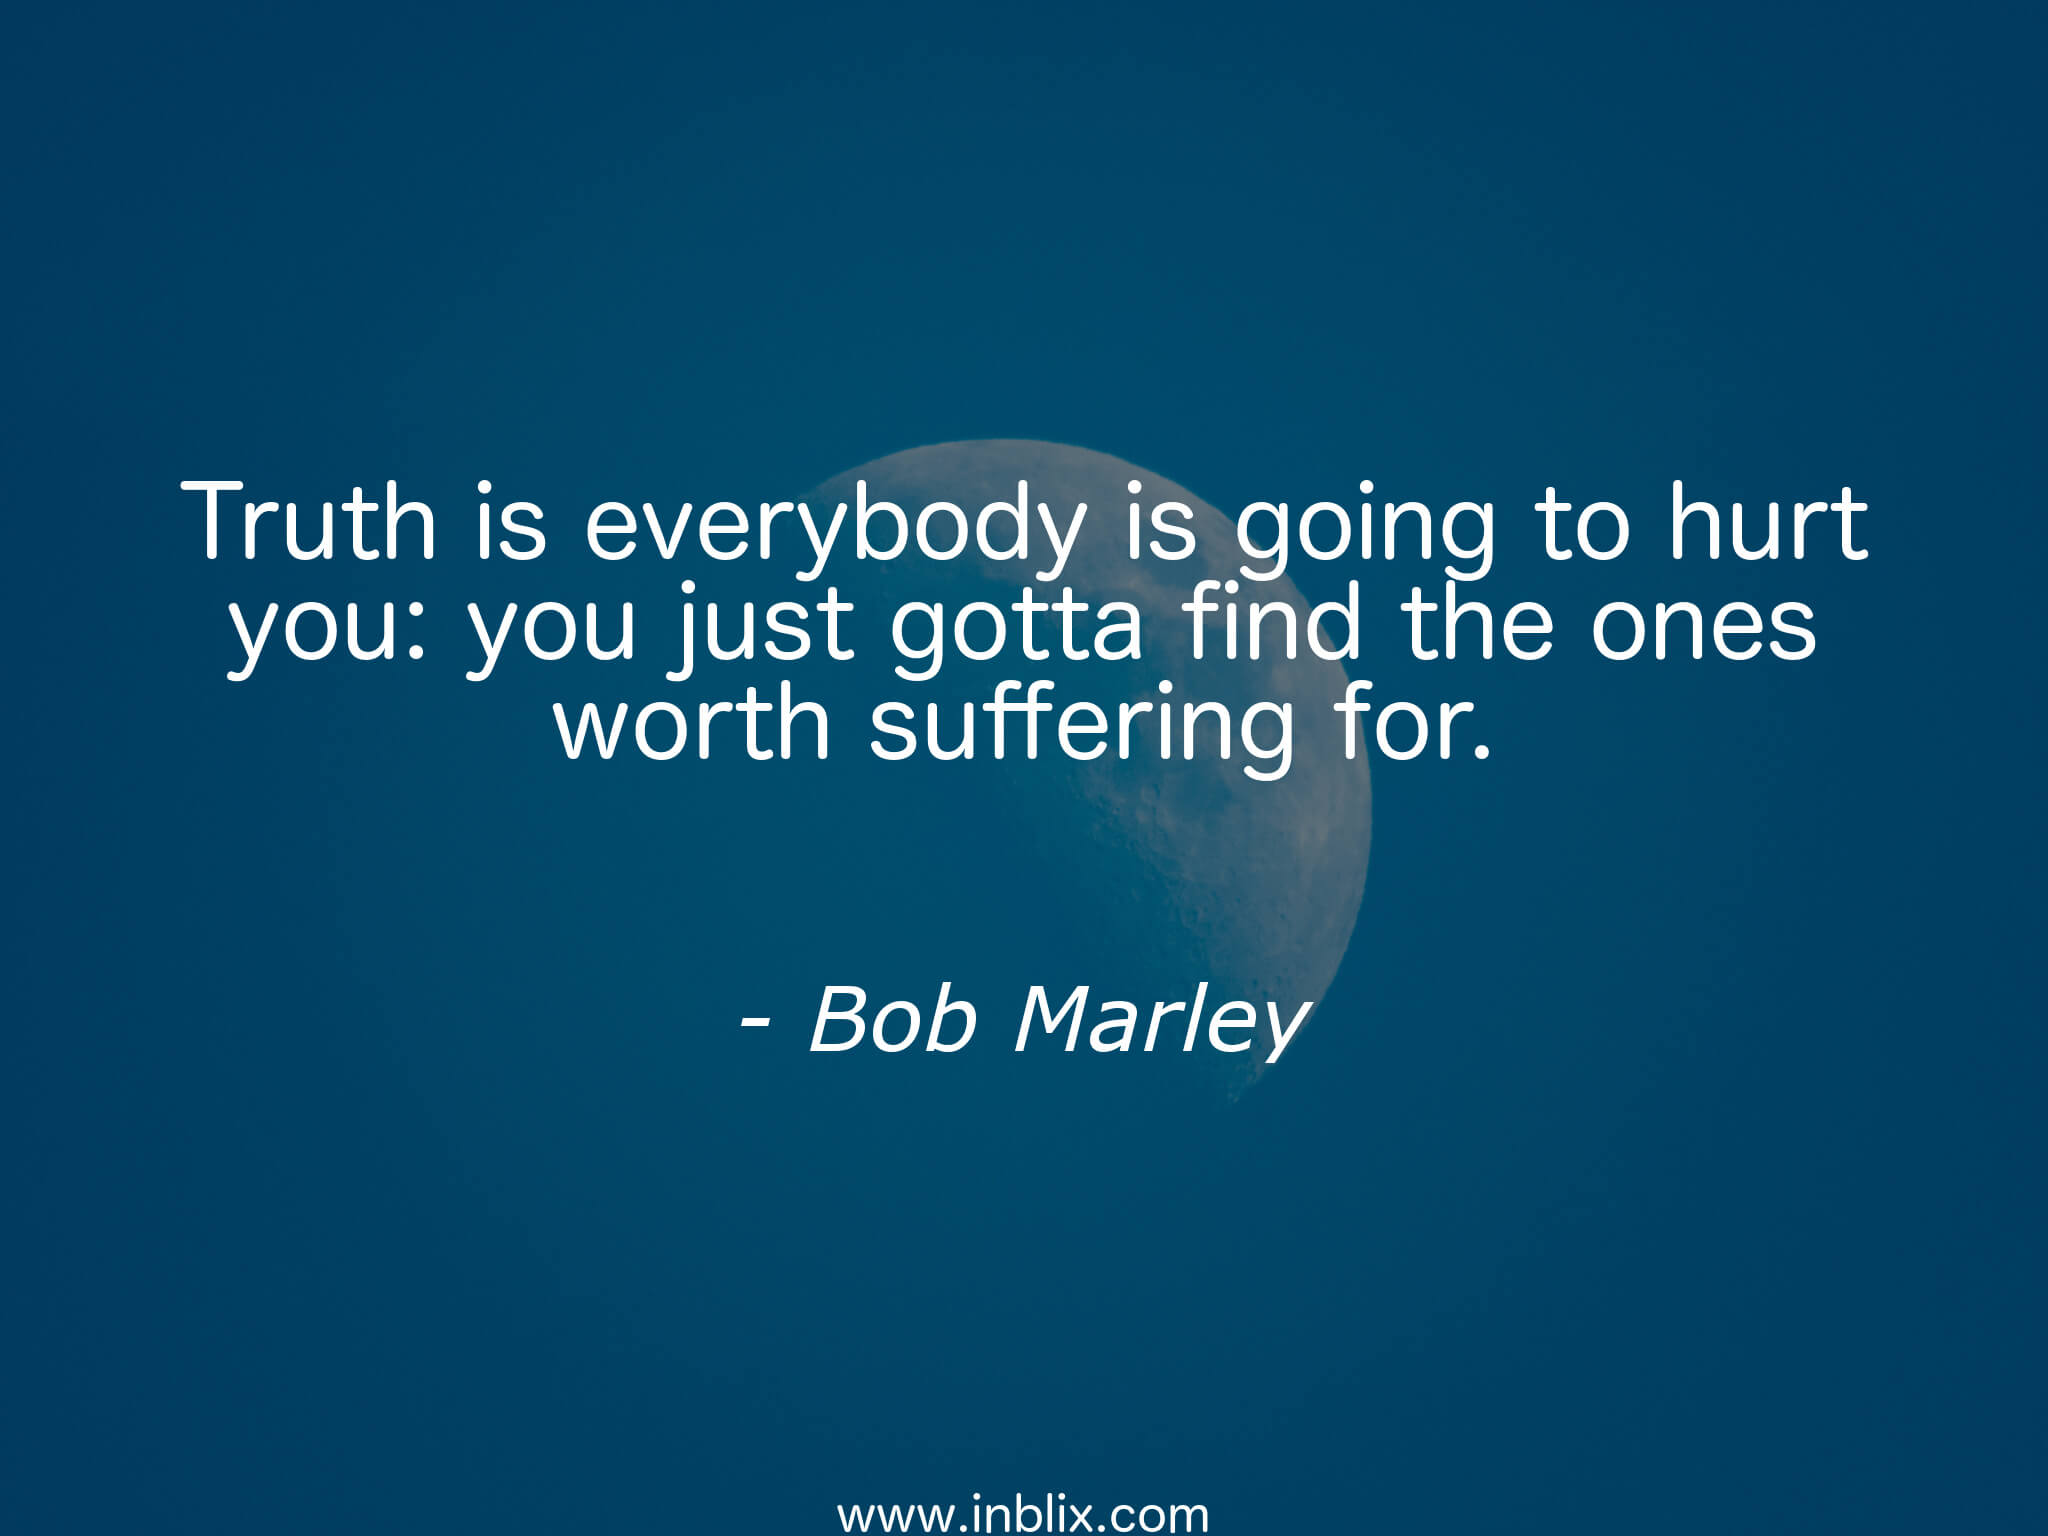 Truth is everybody is going to hurt you. you just gotta find the ones worth suffering for.